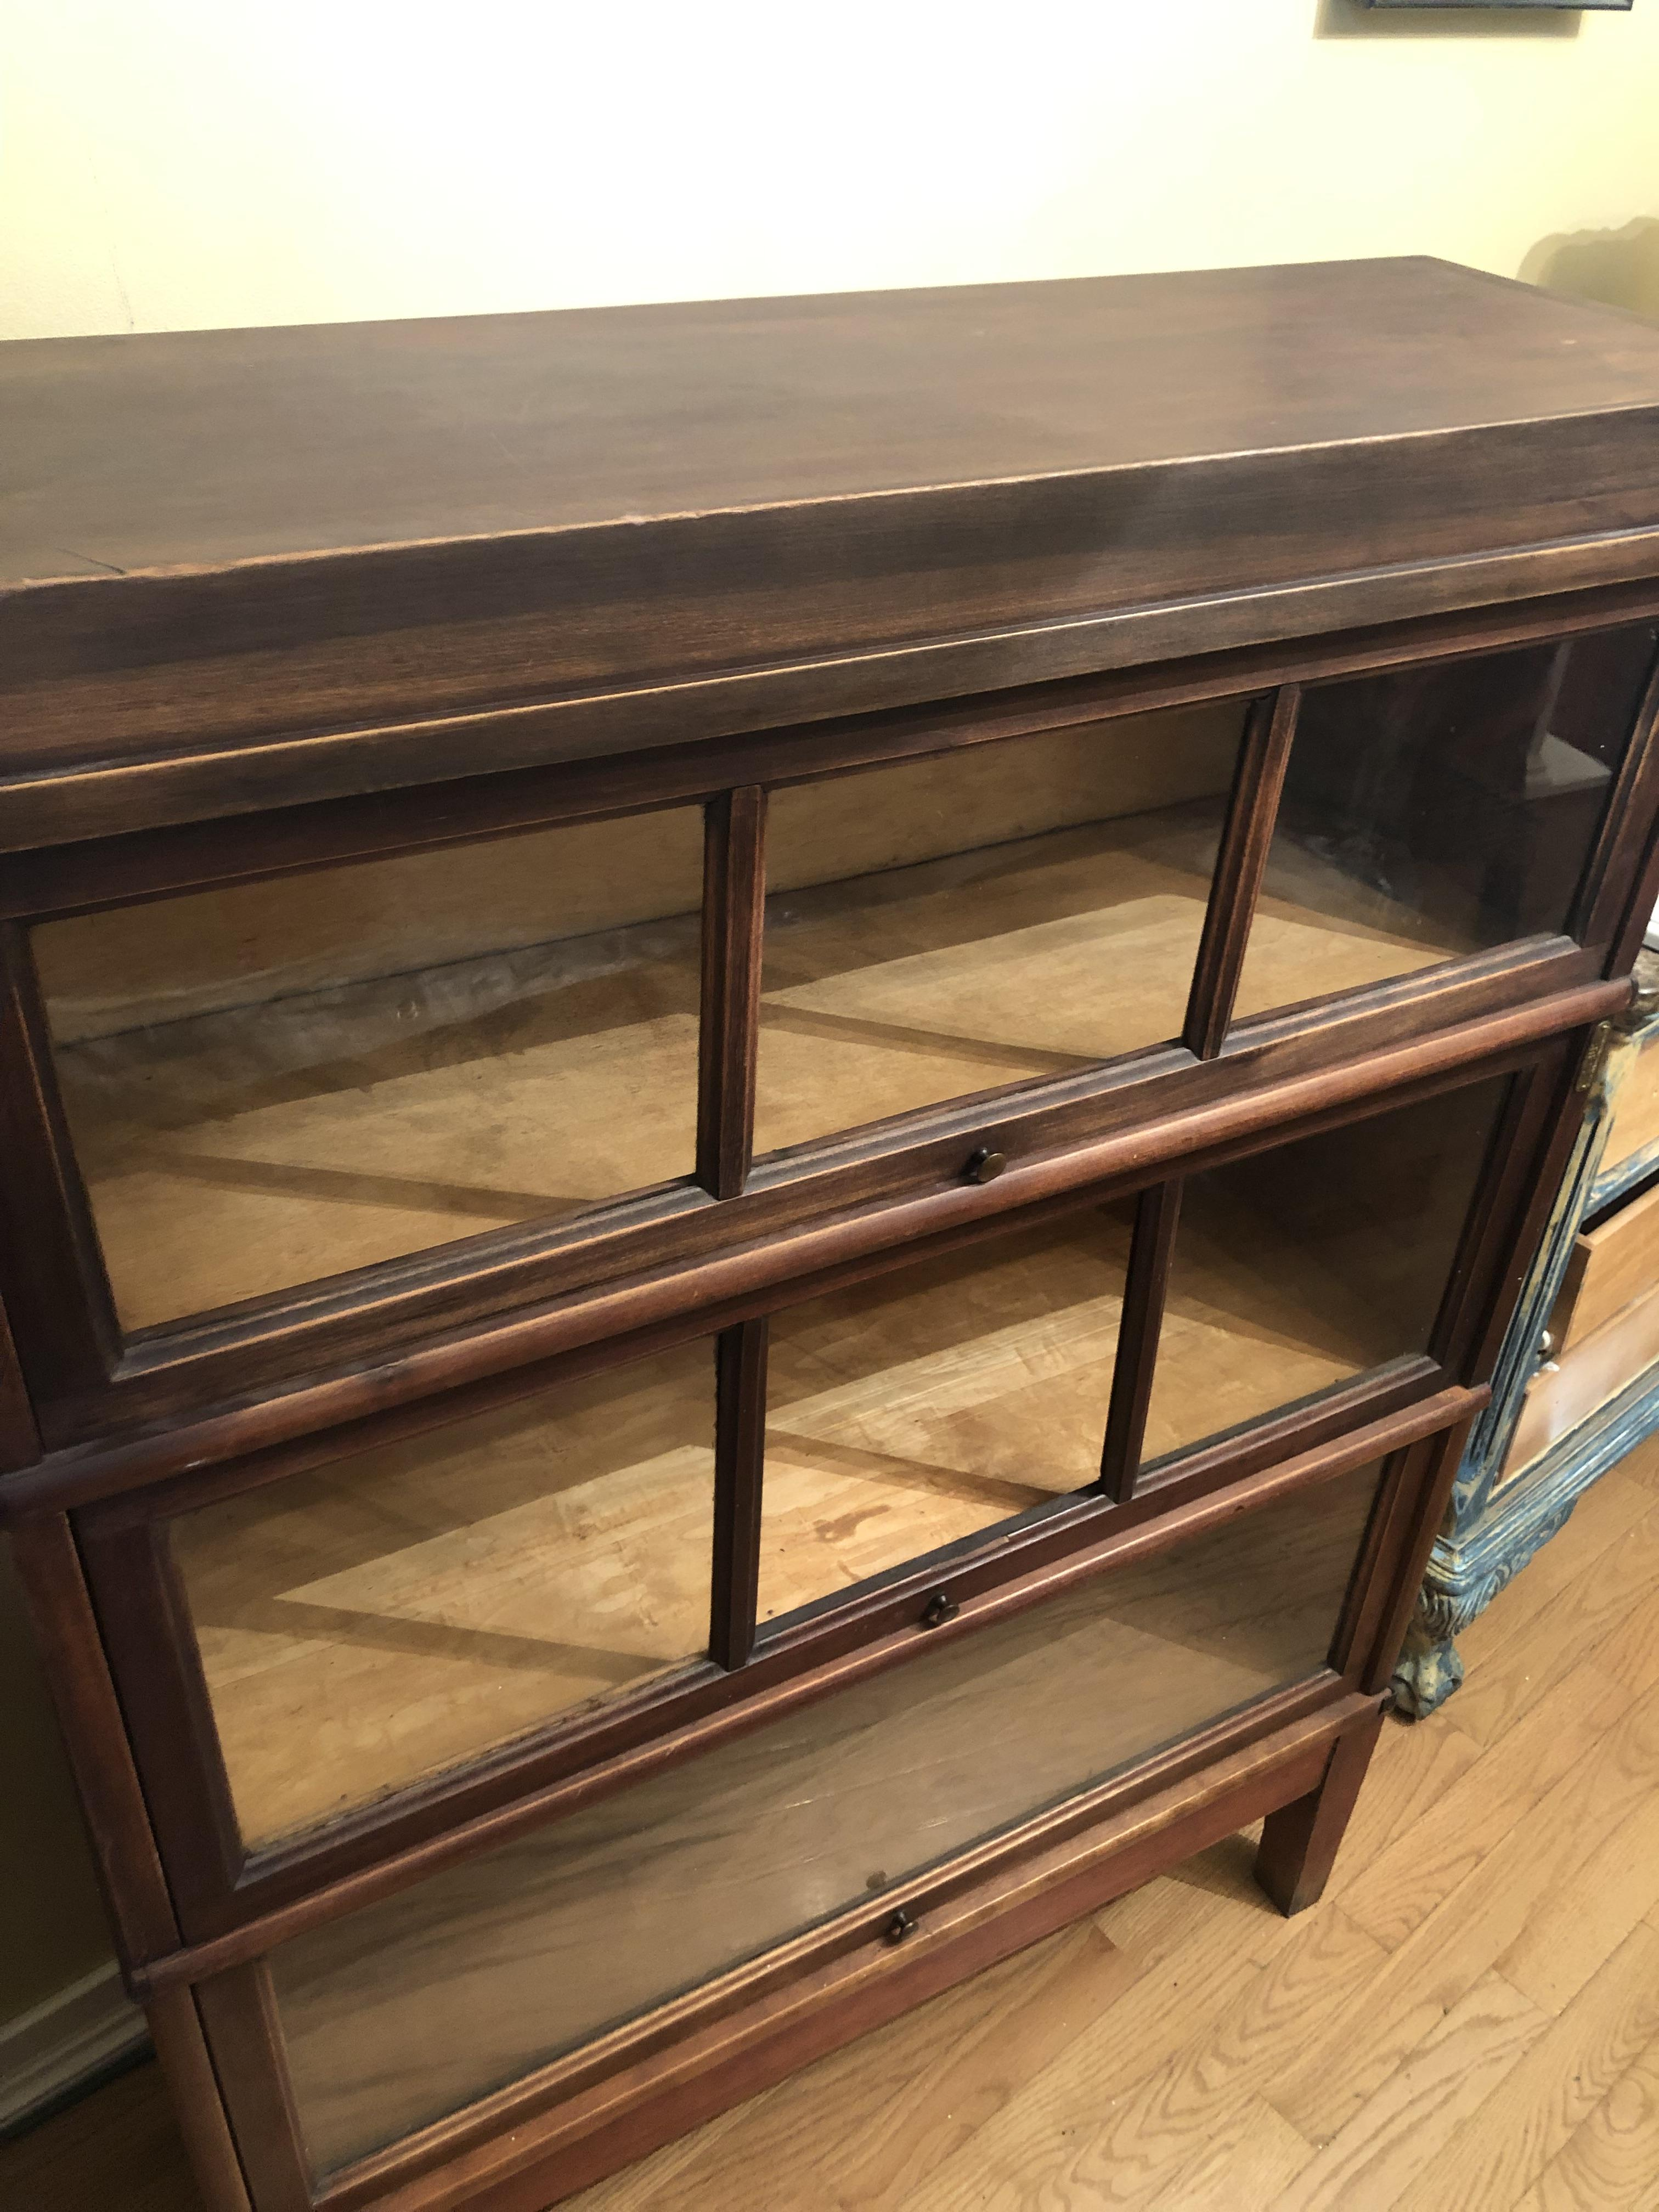 Macey Globe Wernicke Barrister Bookcase Antique Appraisal